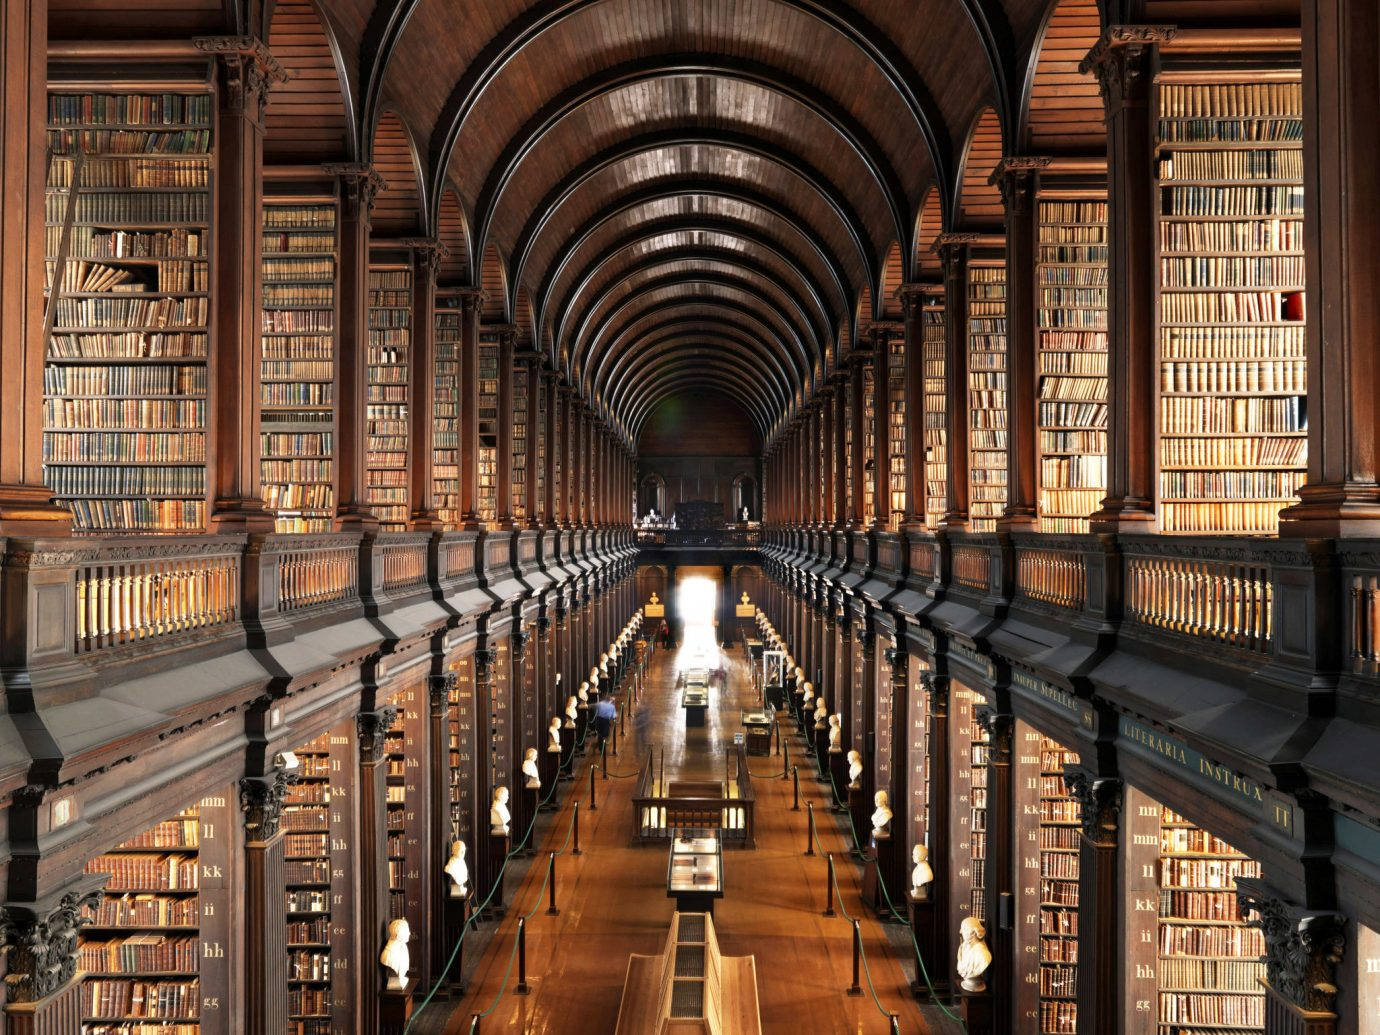 City Cultural Historic Offbeat building indoor library Architecture aisle arcade wooden symmetry tourist attraction lots lined several